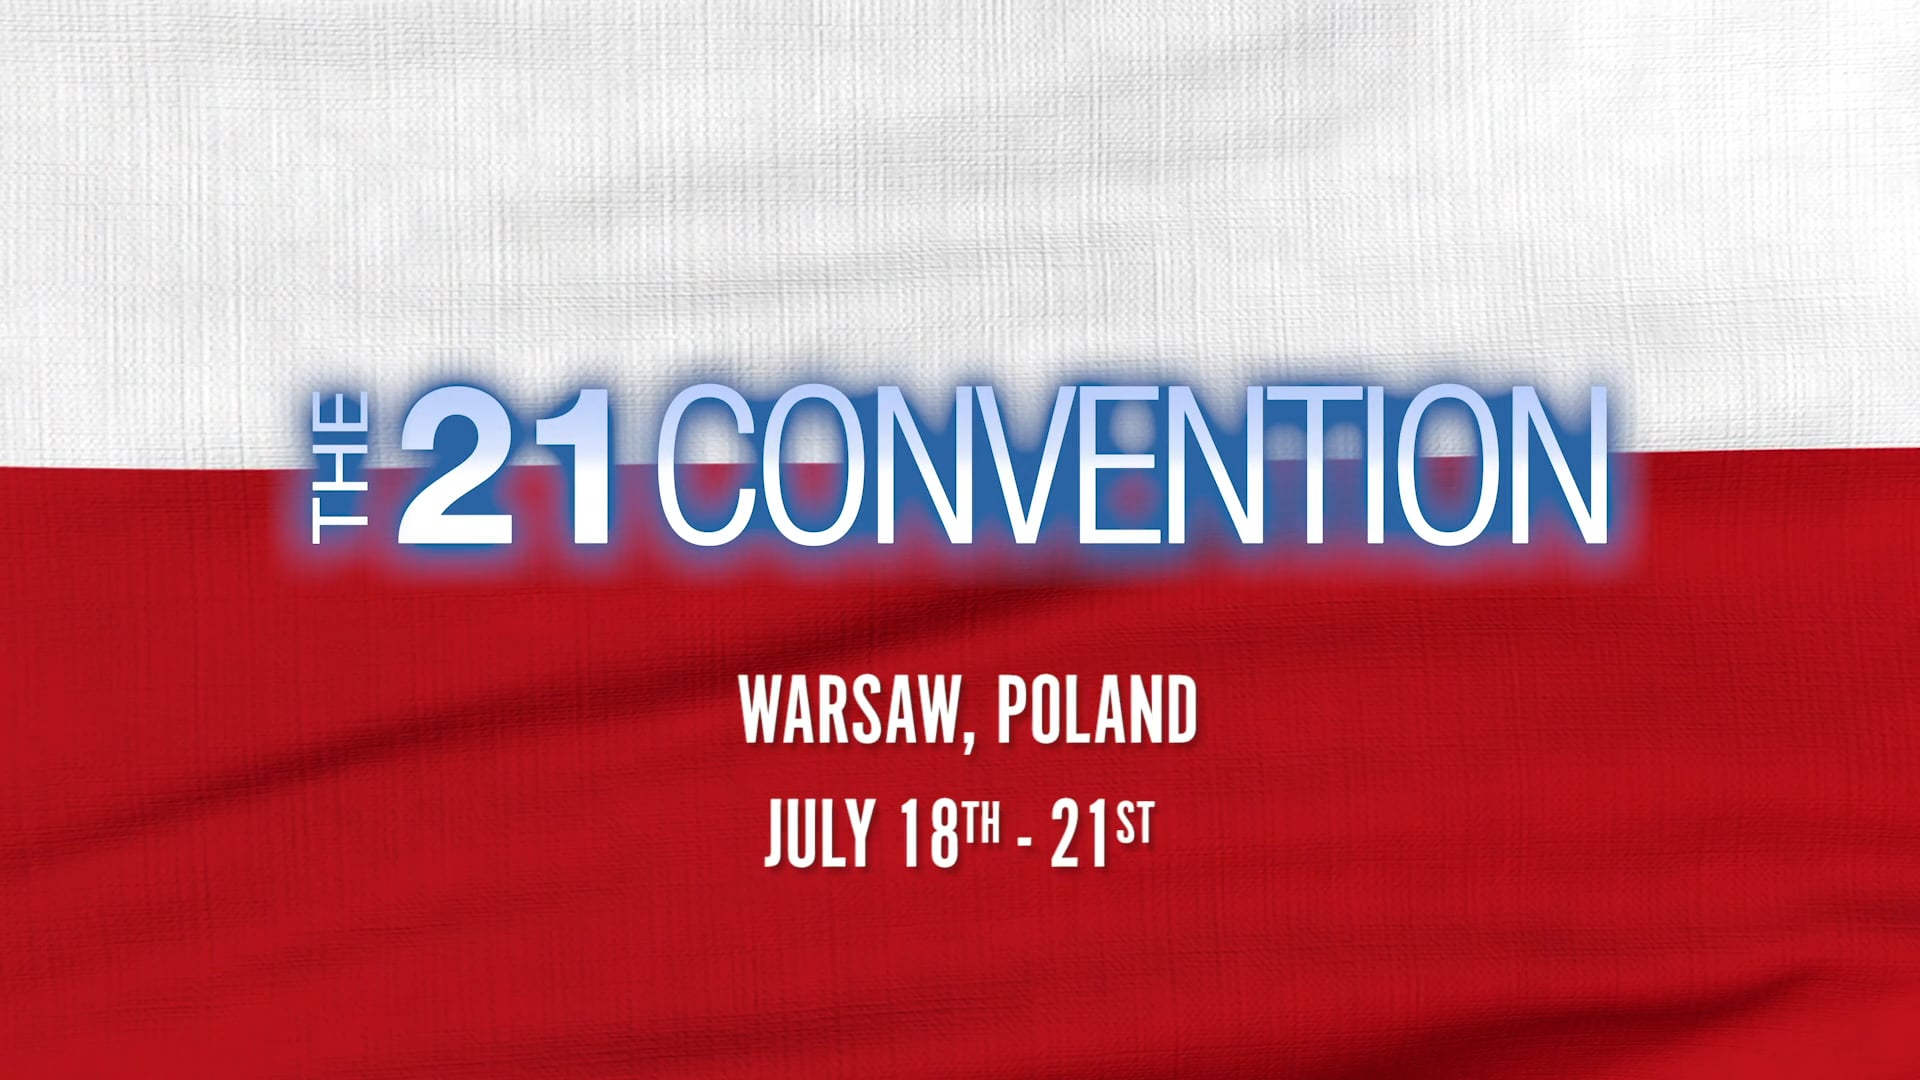 21 Convention Polska